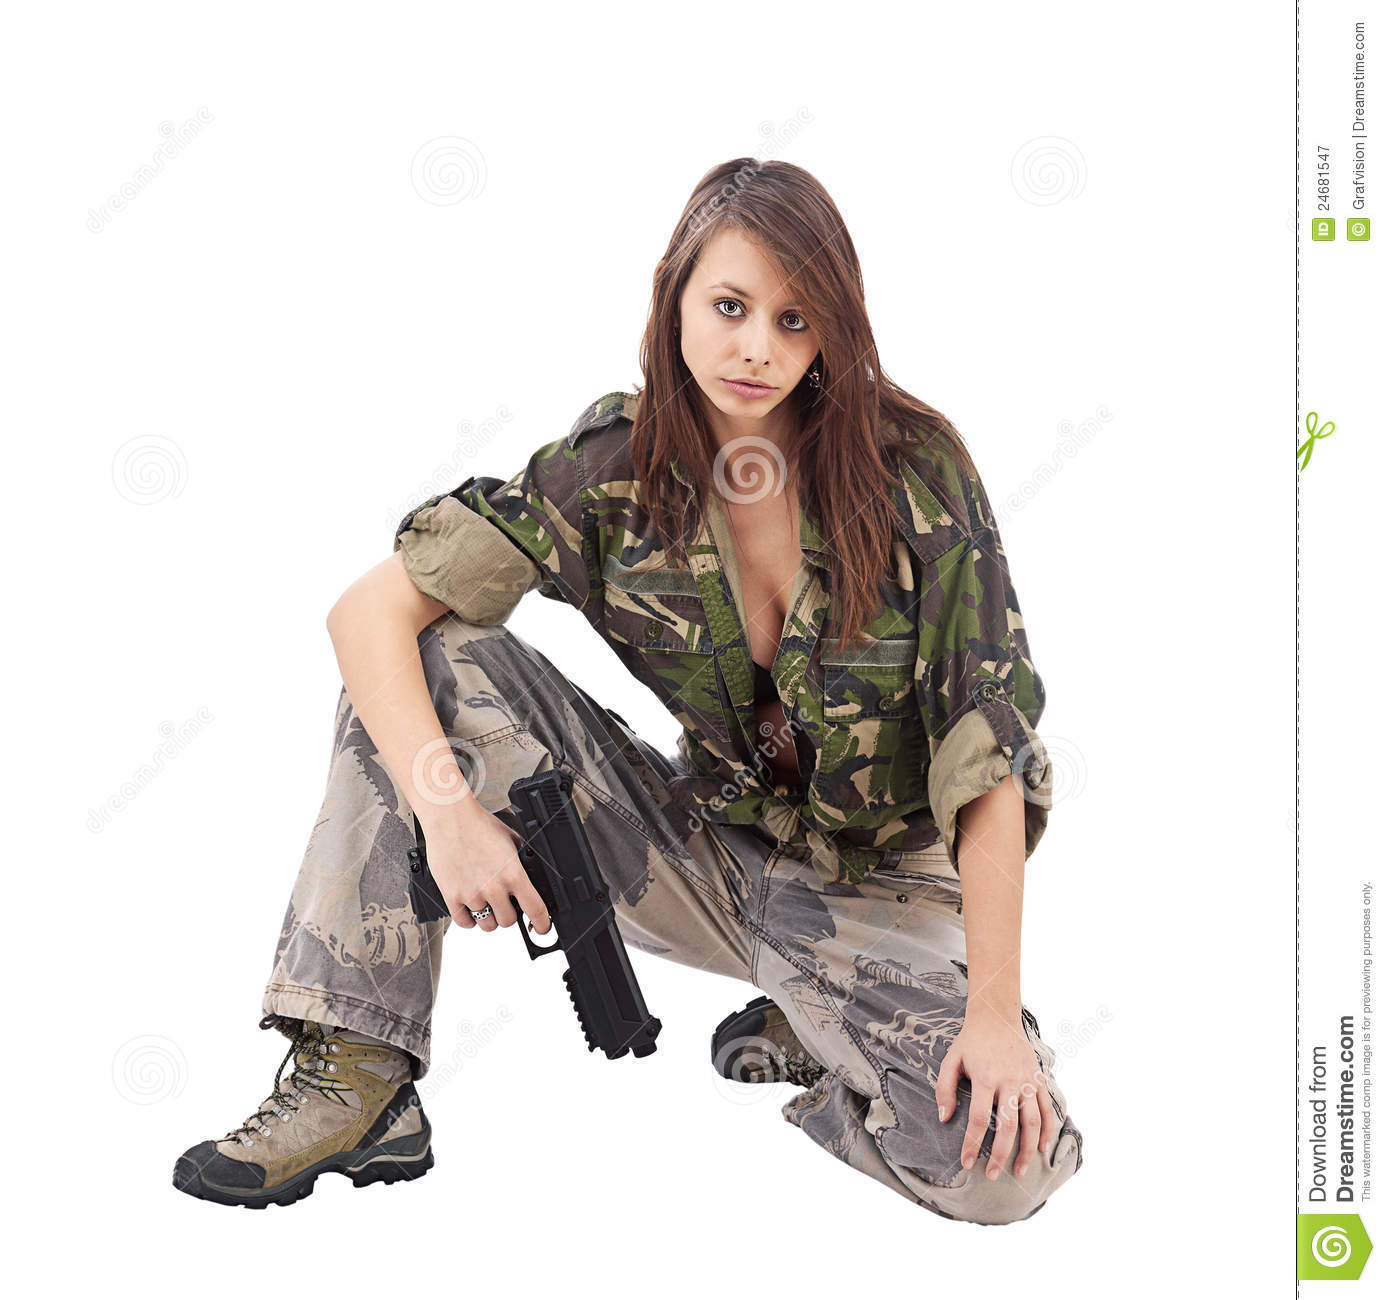 Afro Girl Wallpaper Warrior Woman In Military Camo Royalty Free Stock